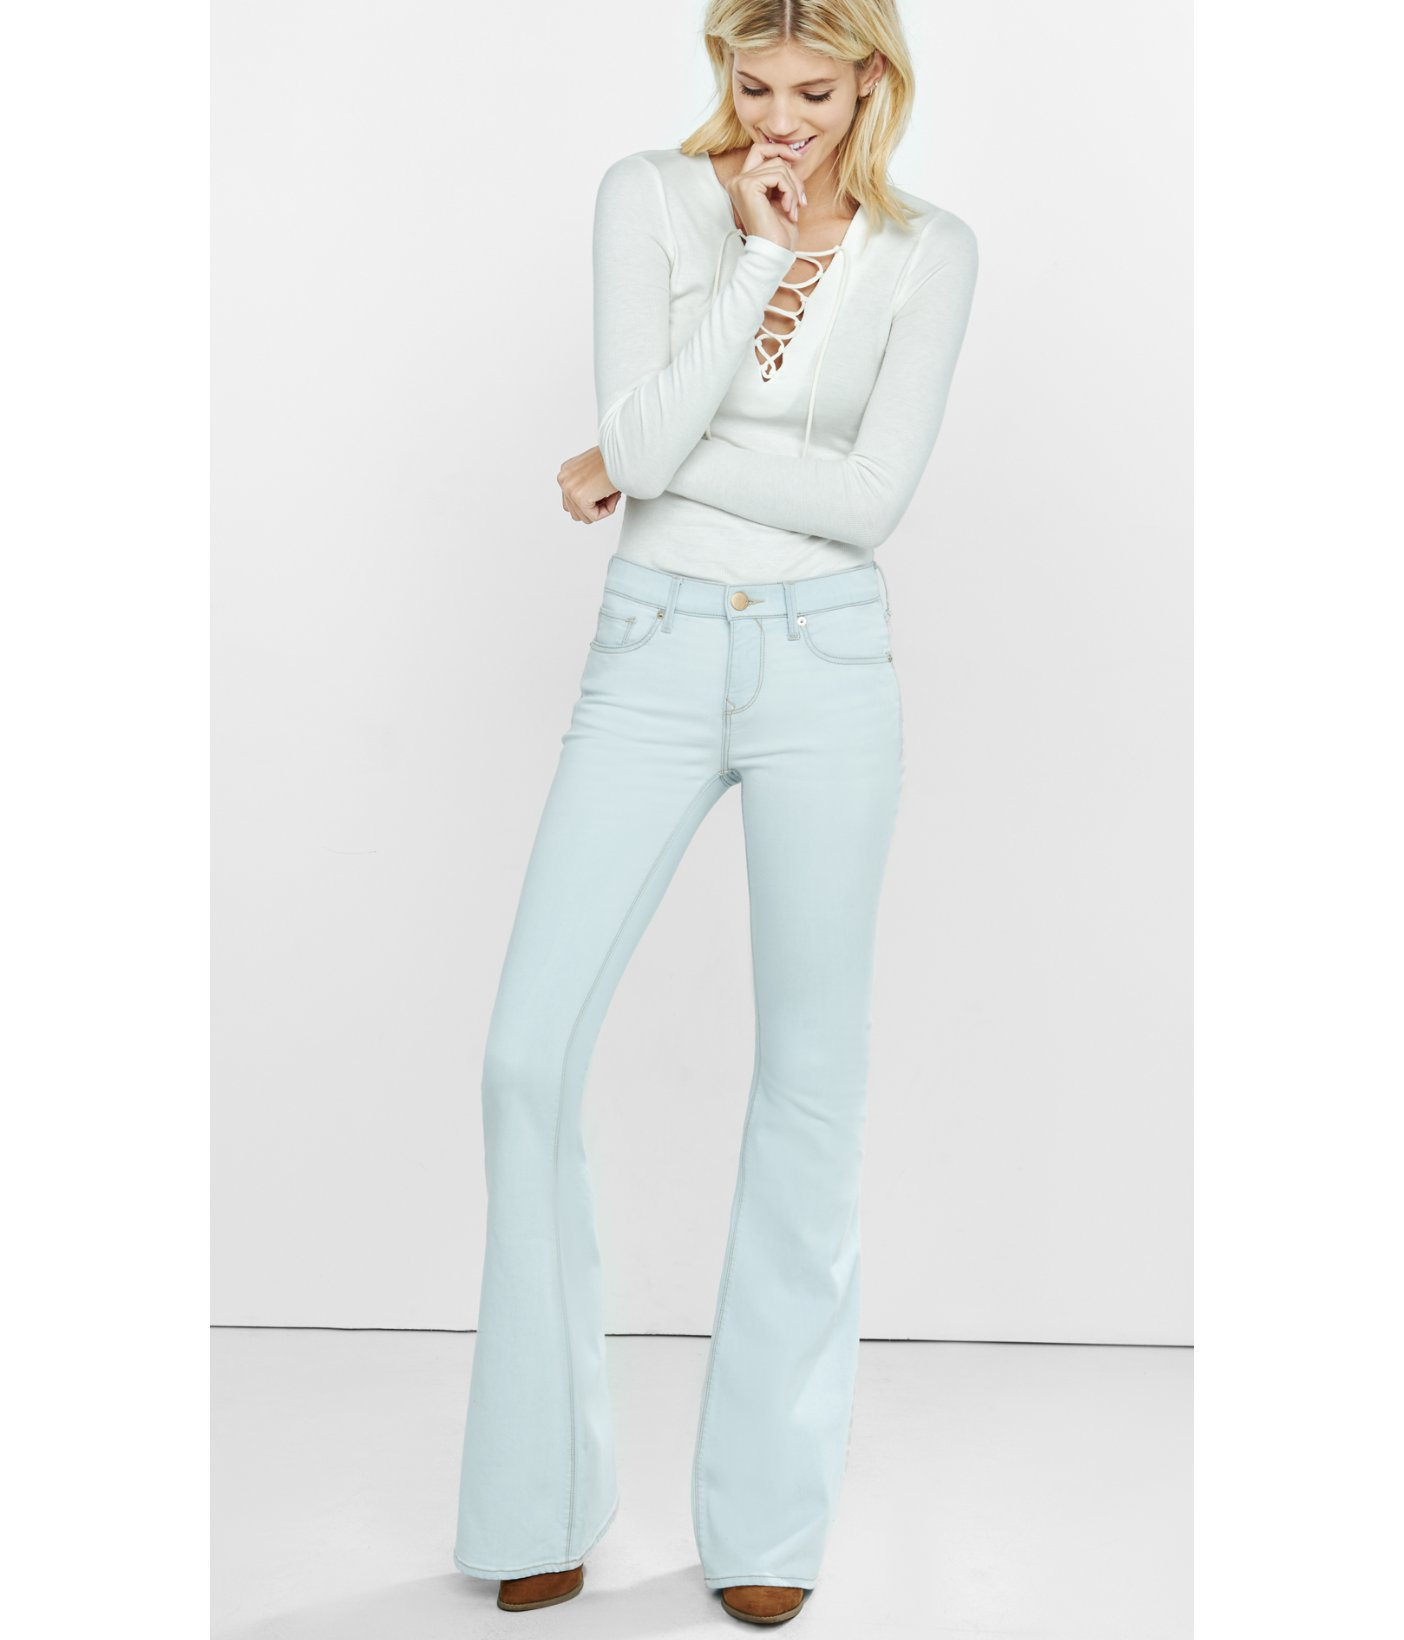 Lyst - Express Light Wash Mid Rise Bell Flare Jeans in Blue